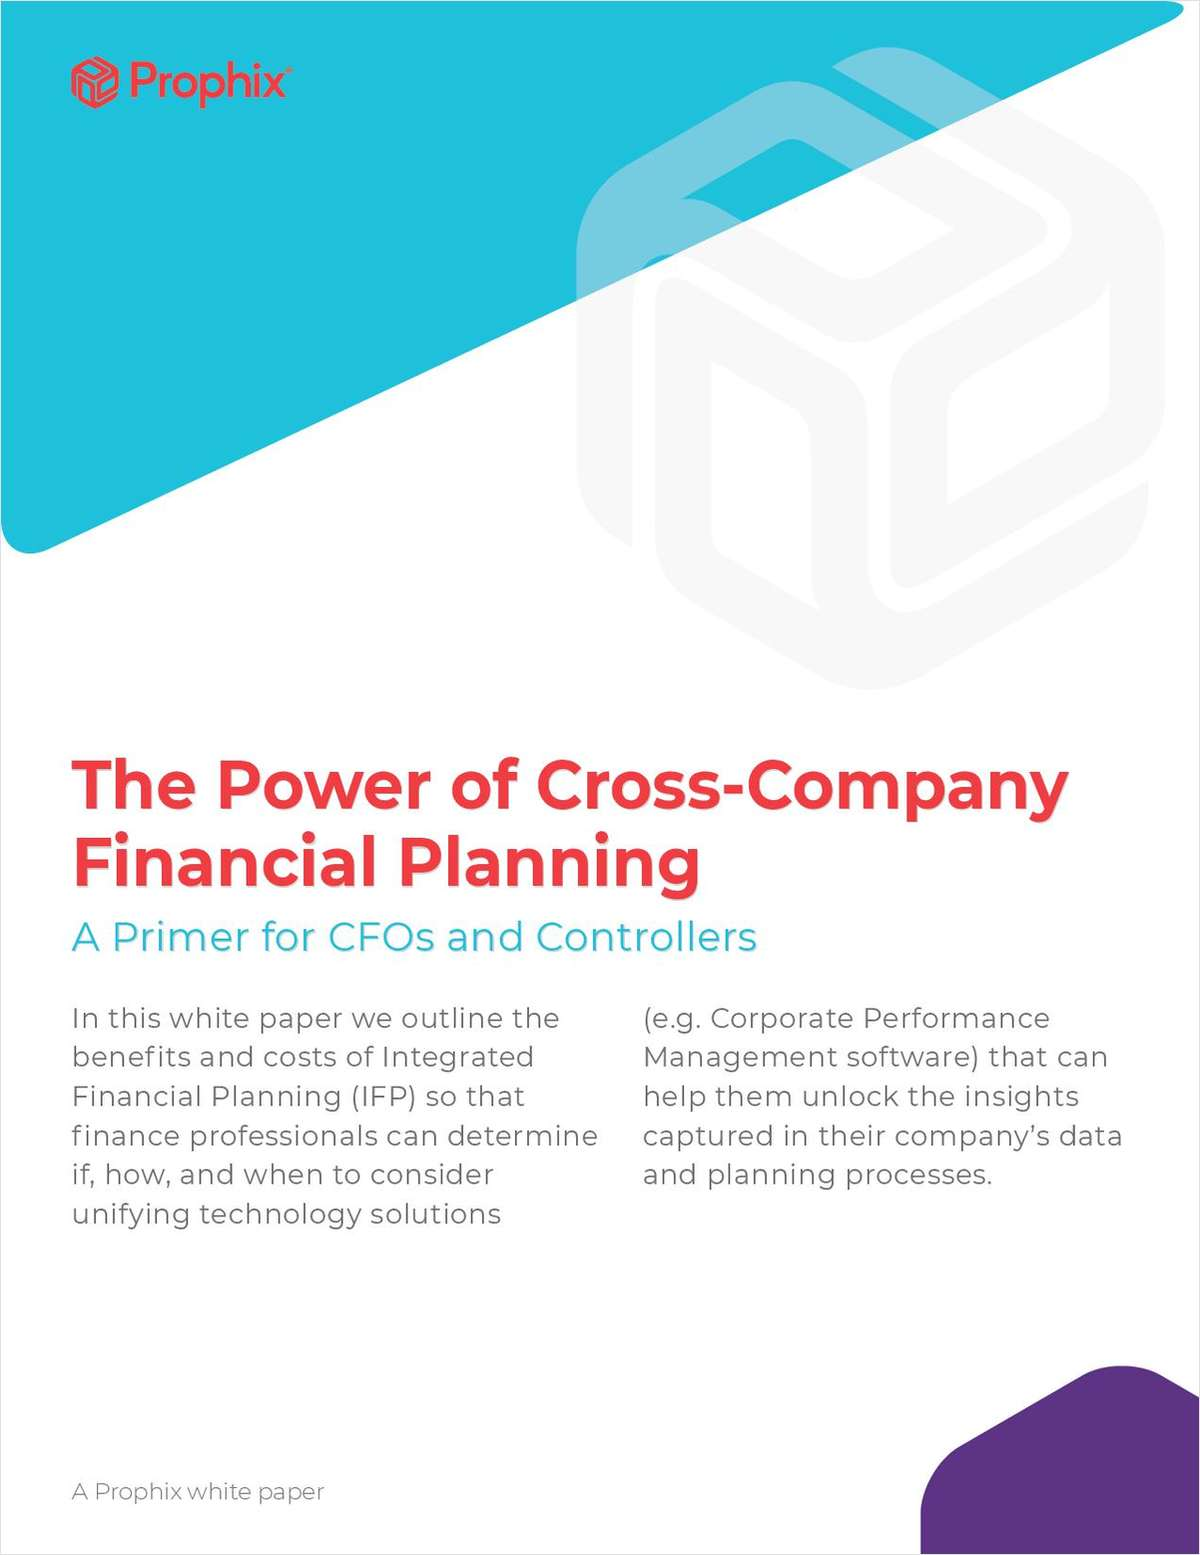 The Power of Cross-Company Financial Planning